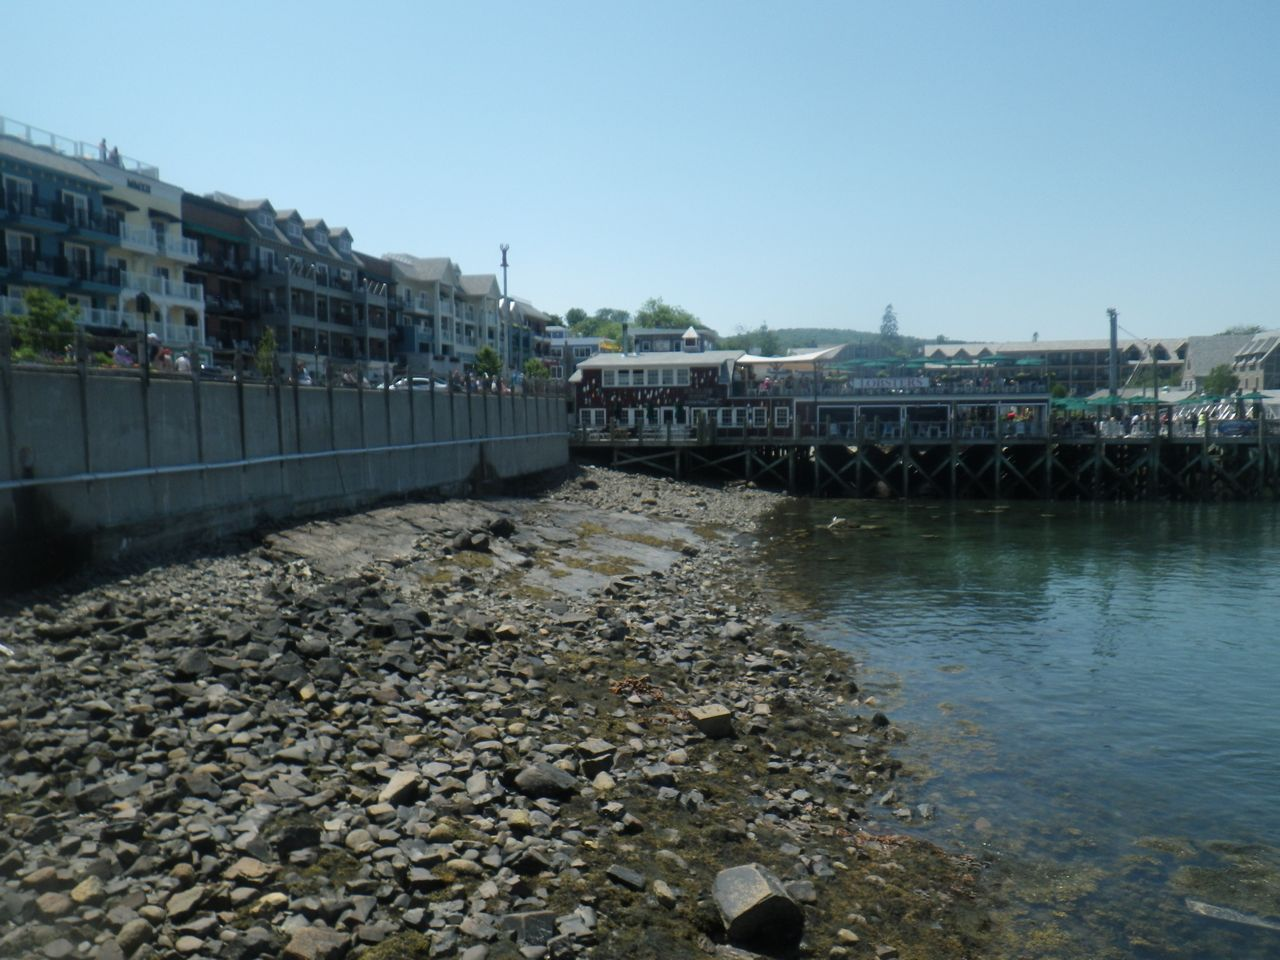 Pier from the tender stop